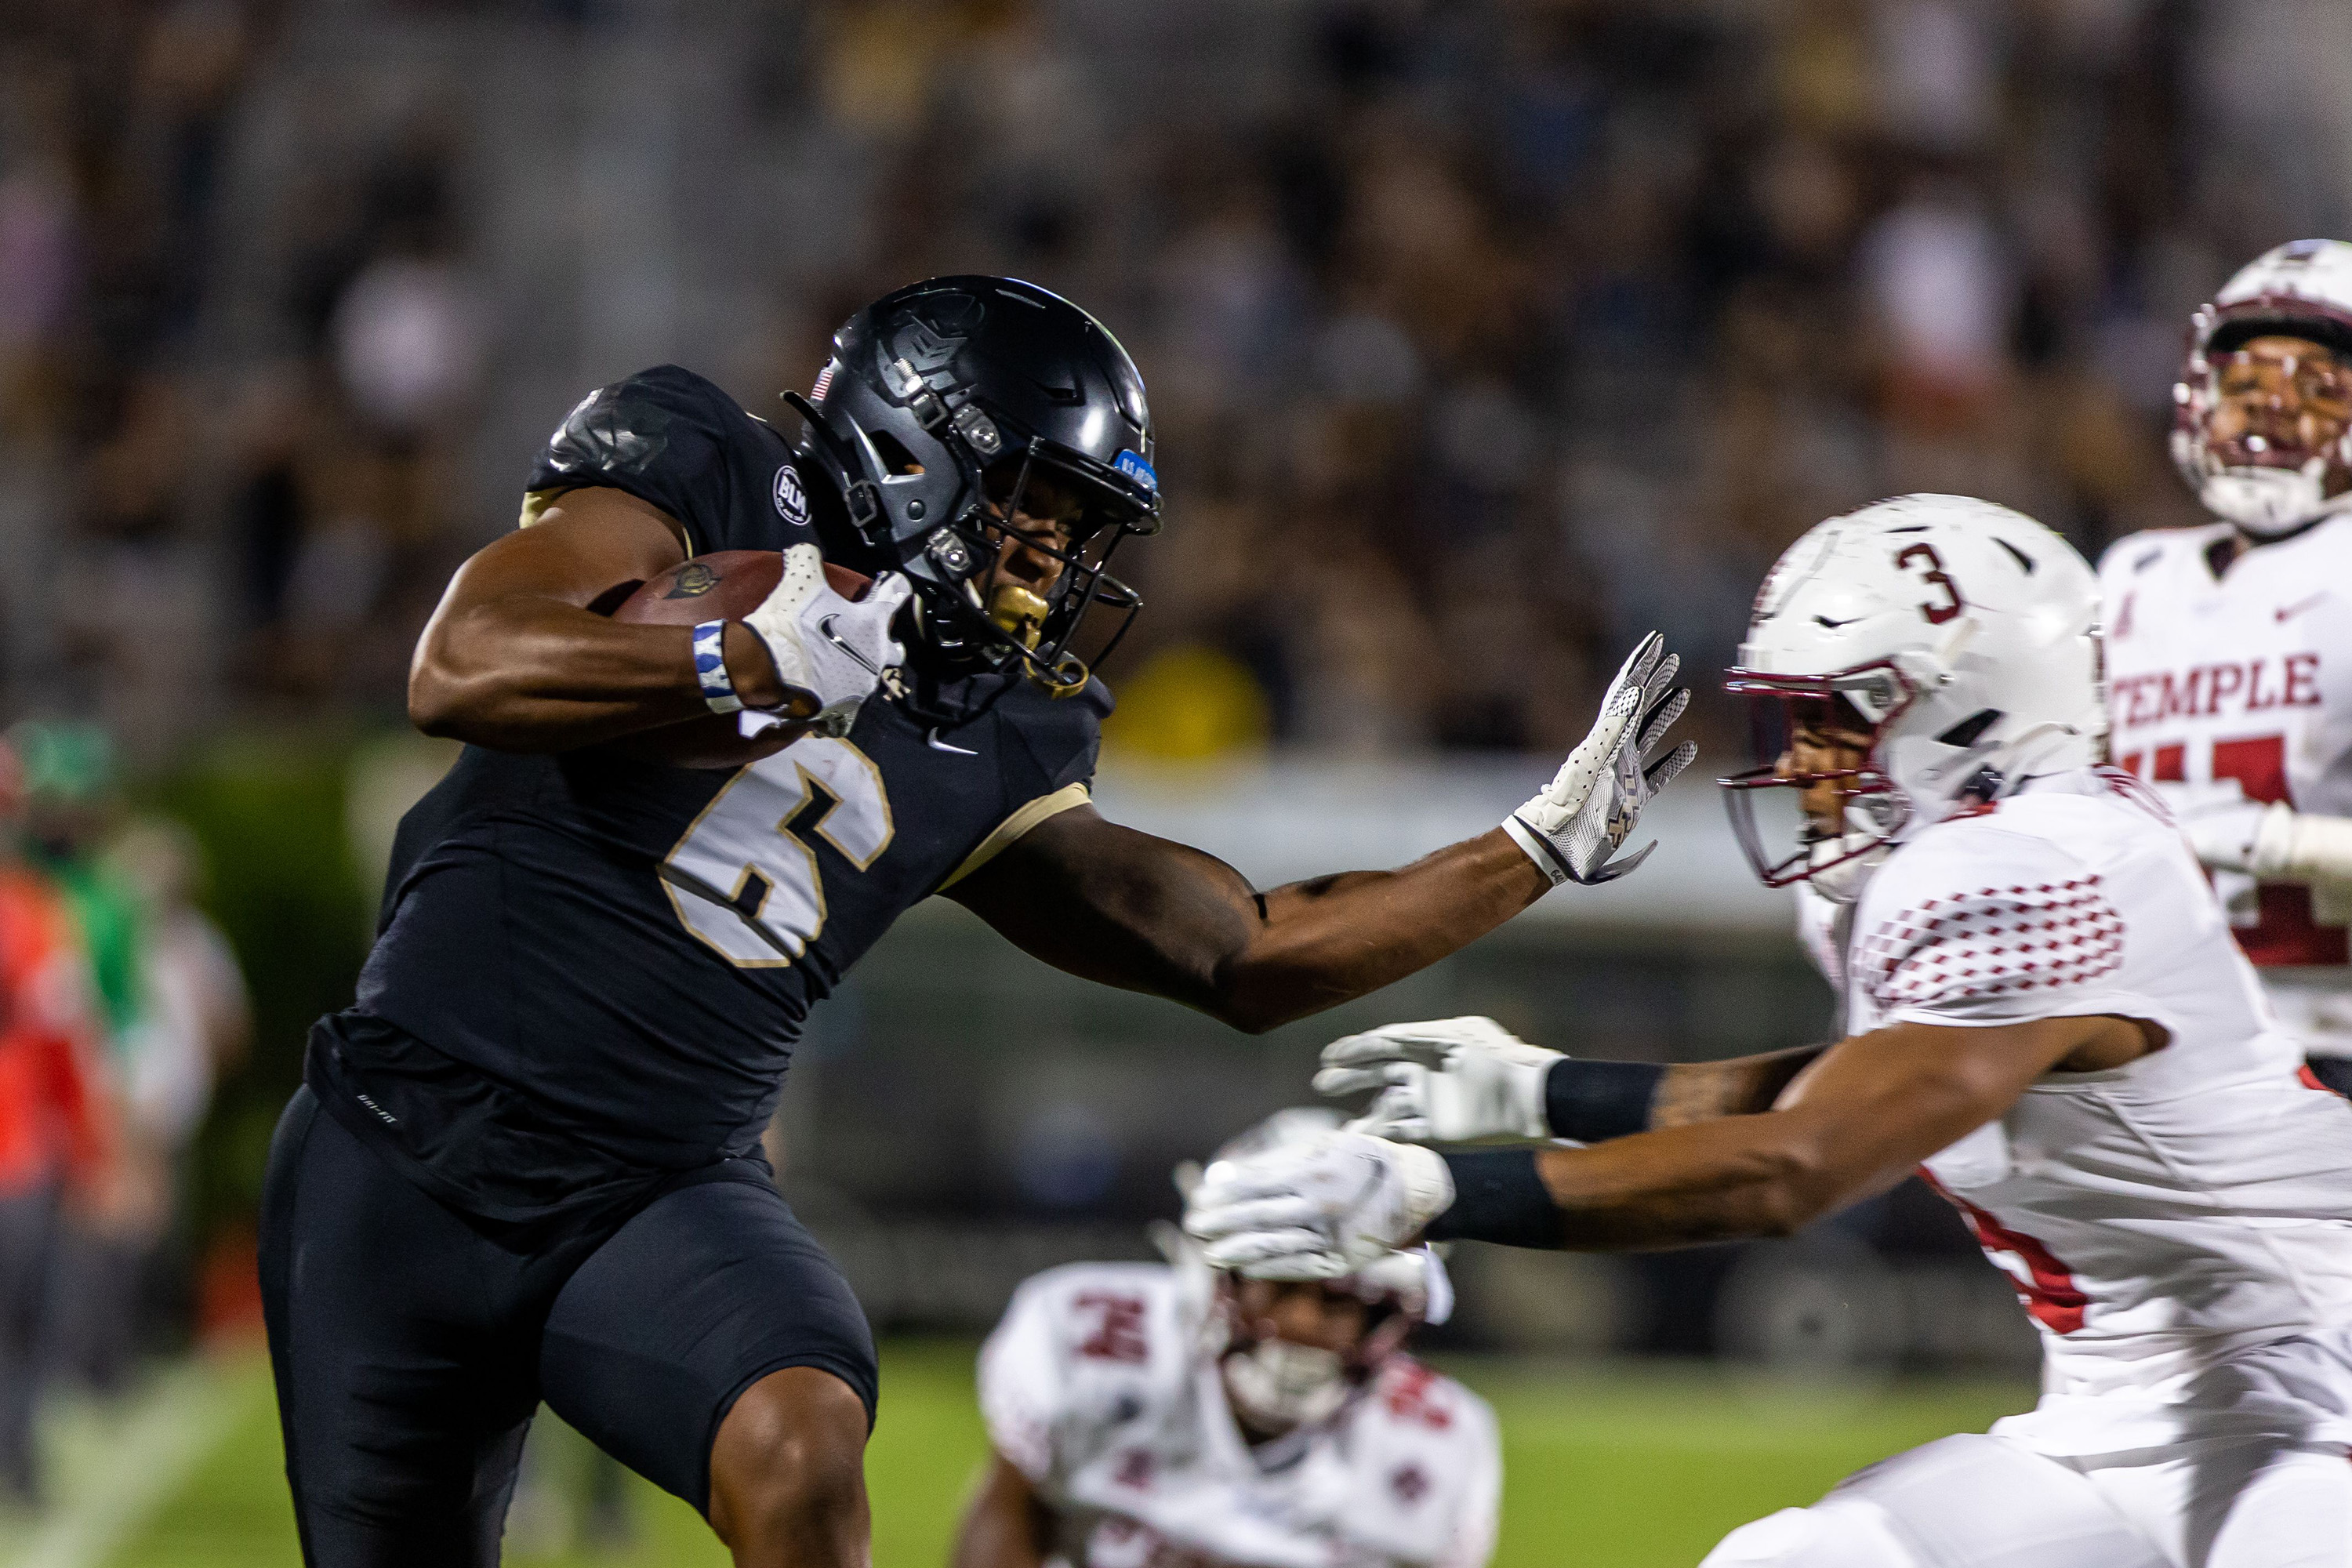 UCF receiver Marlon Williams opts out of rest of 2020 season, declares for NFL draft